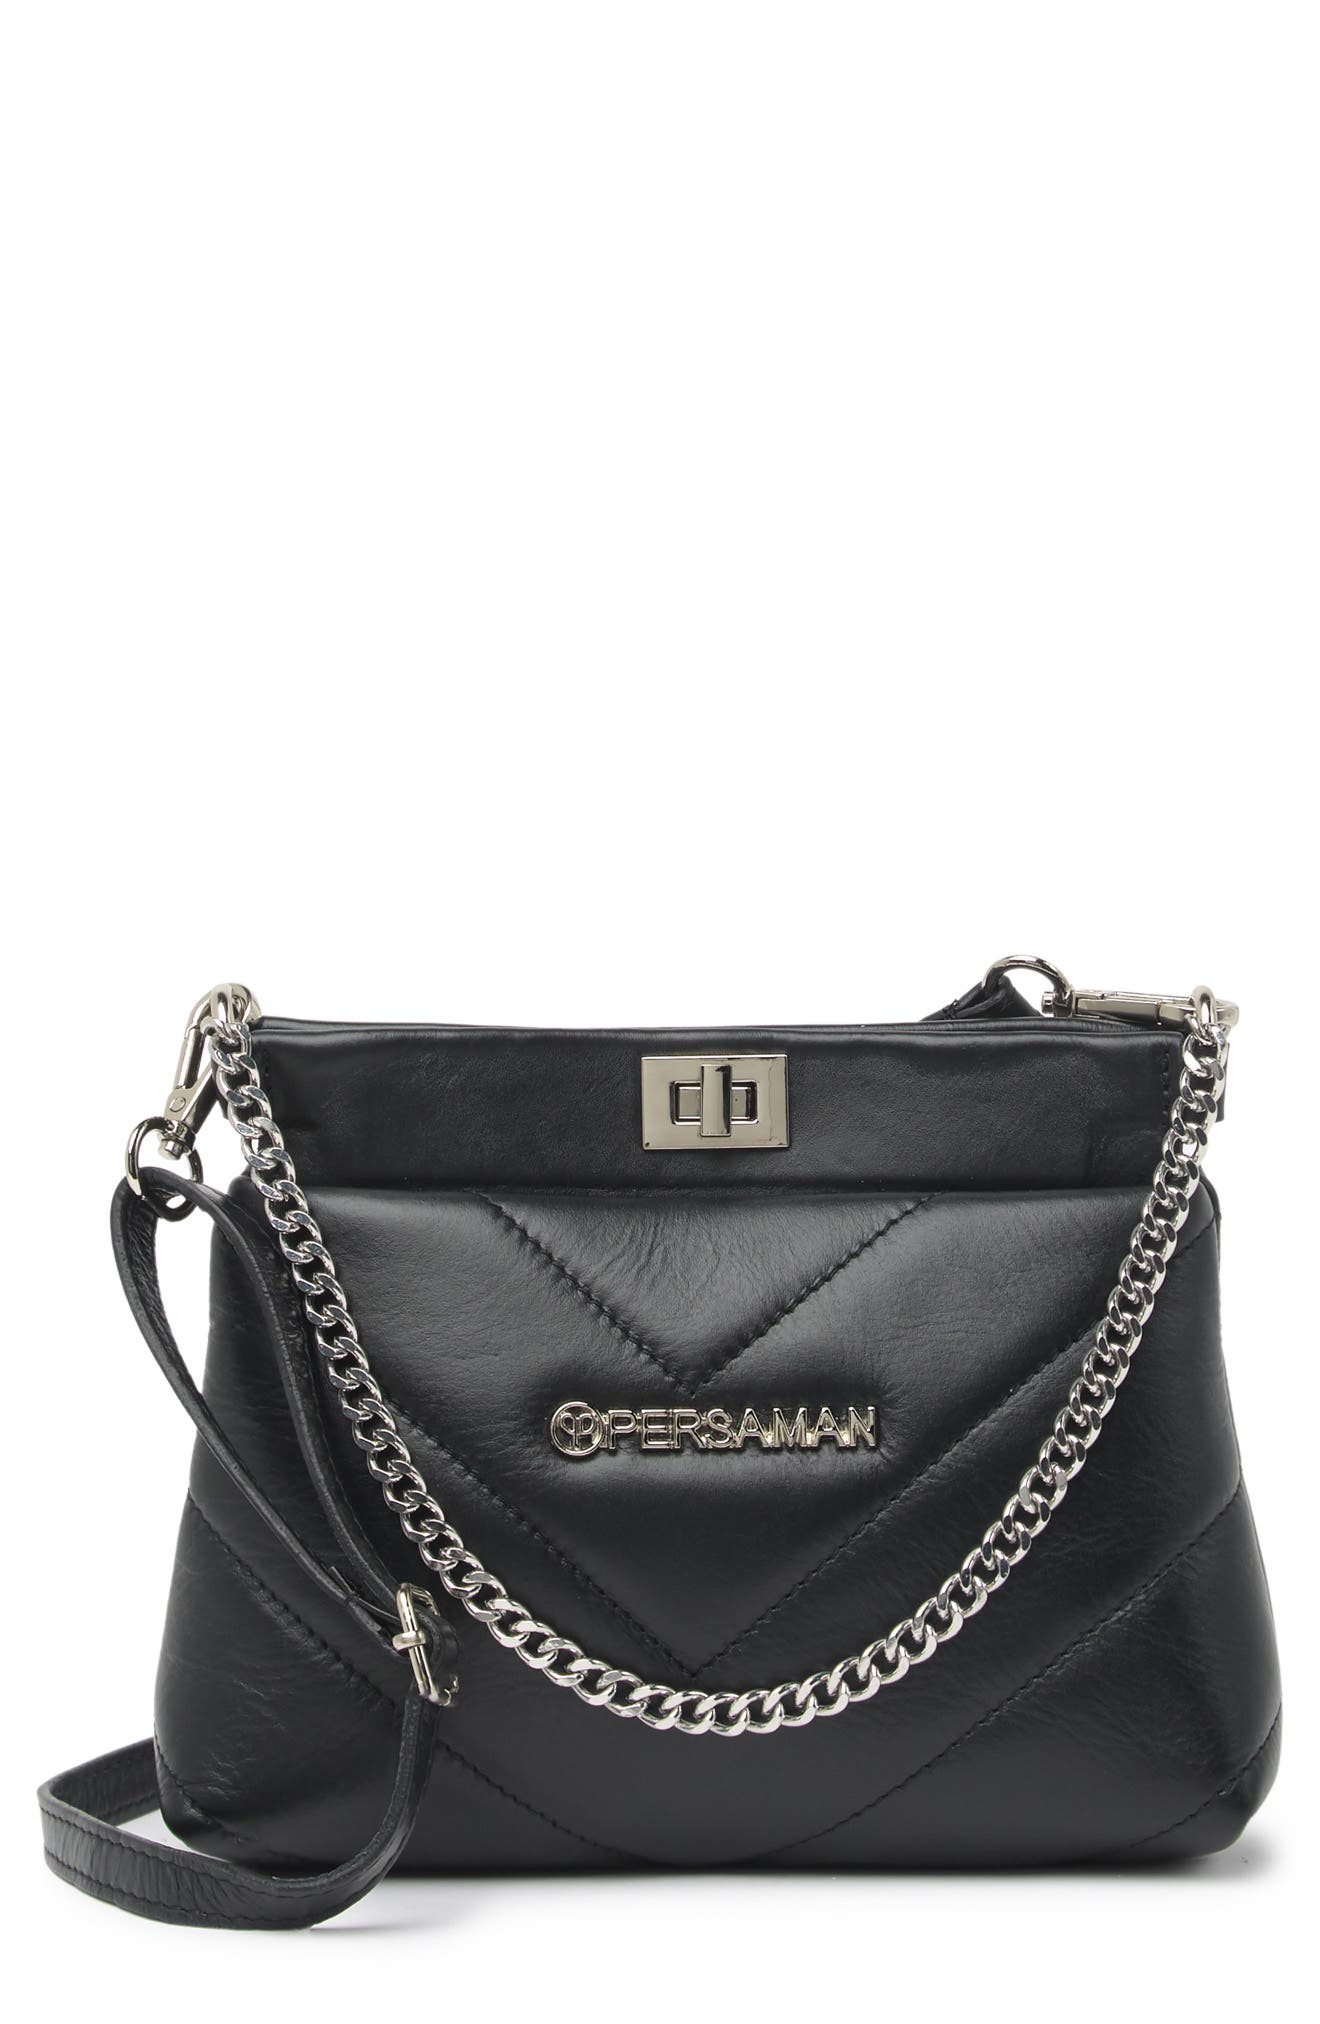 Image of Persaman New York Luisa Quilted Leather Shoulder Bag